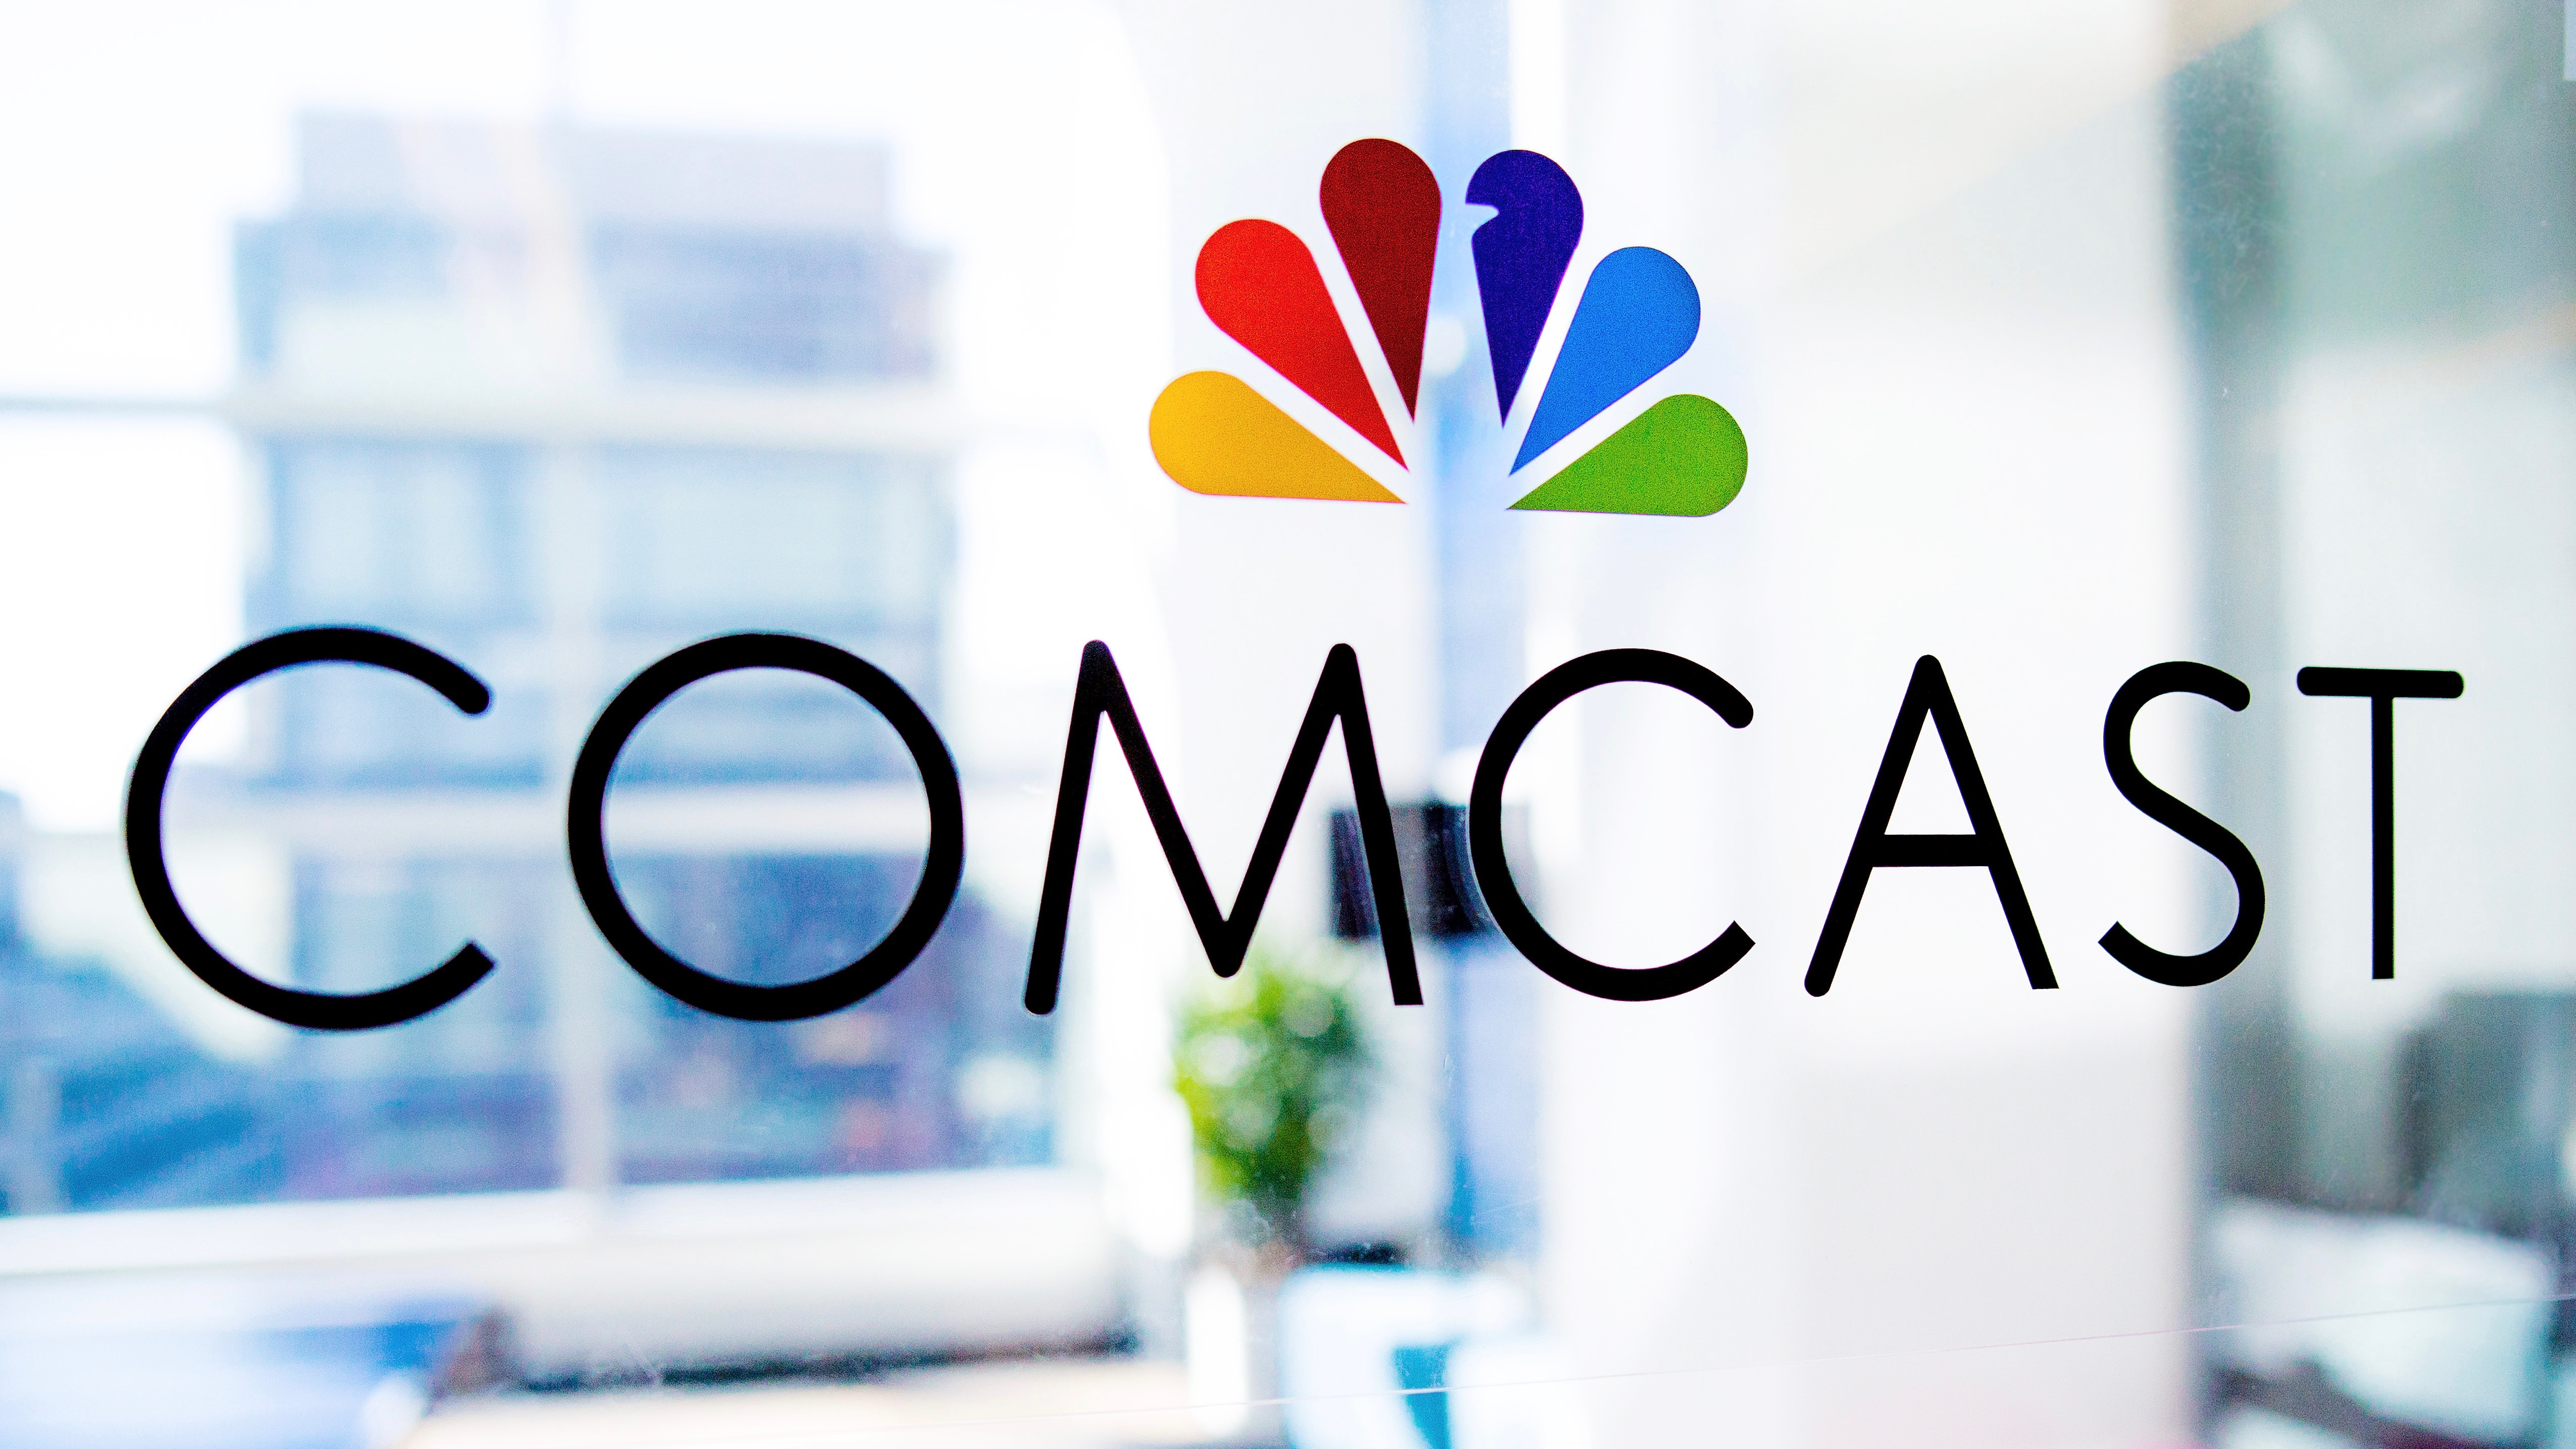 Comcast says it supports open internet principles, still has ideas for paid fast lanes